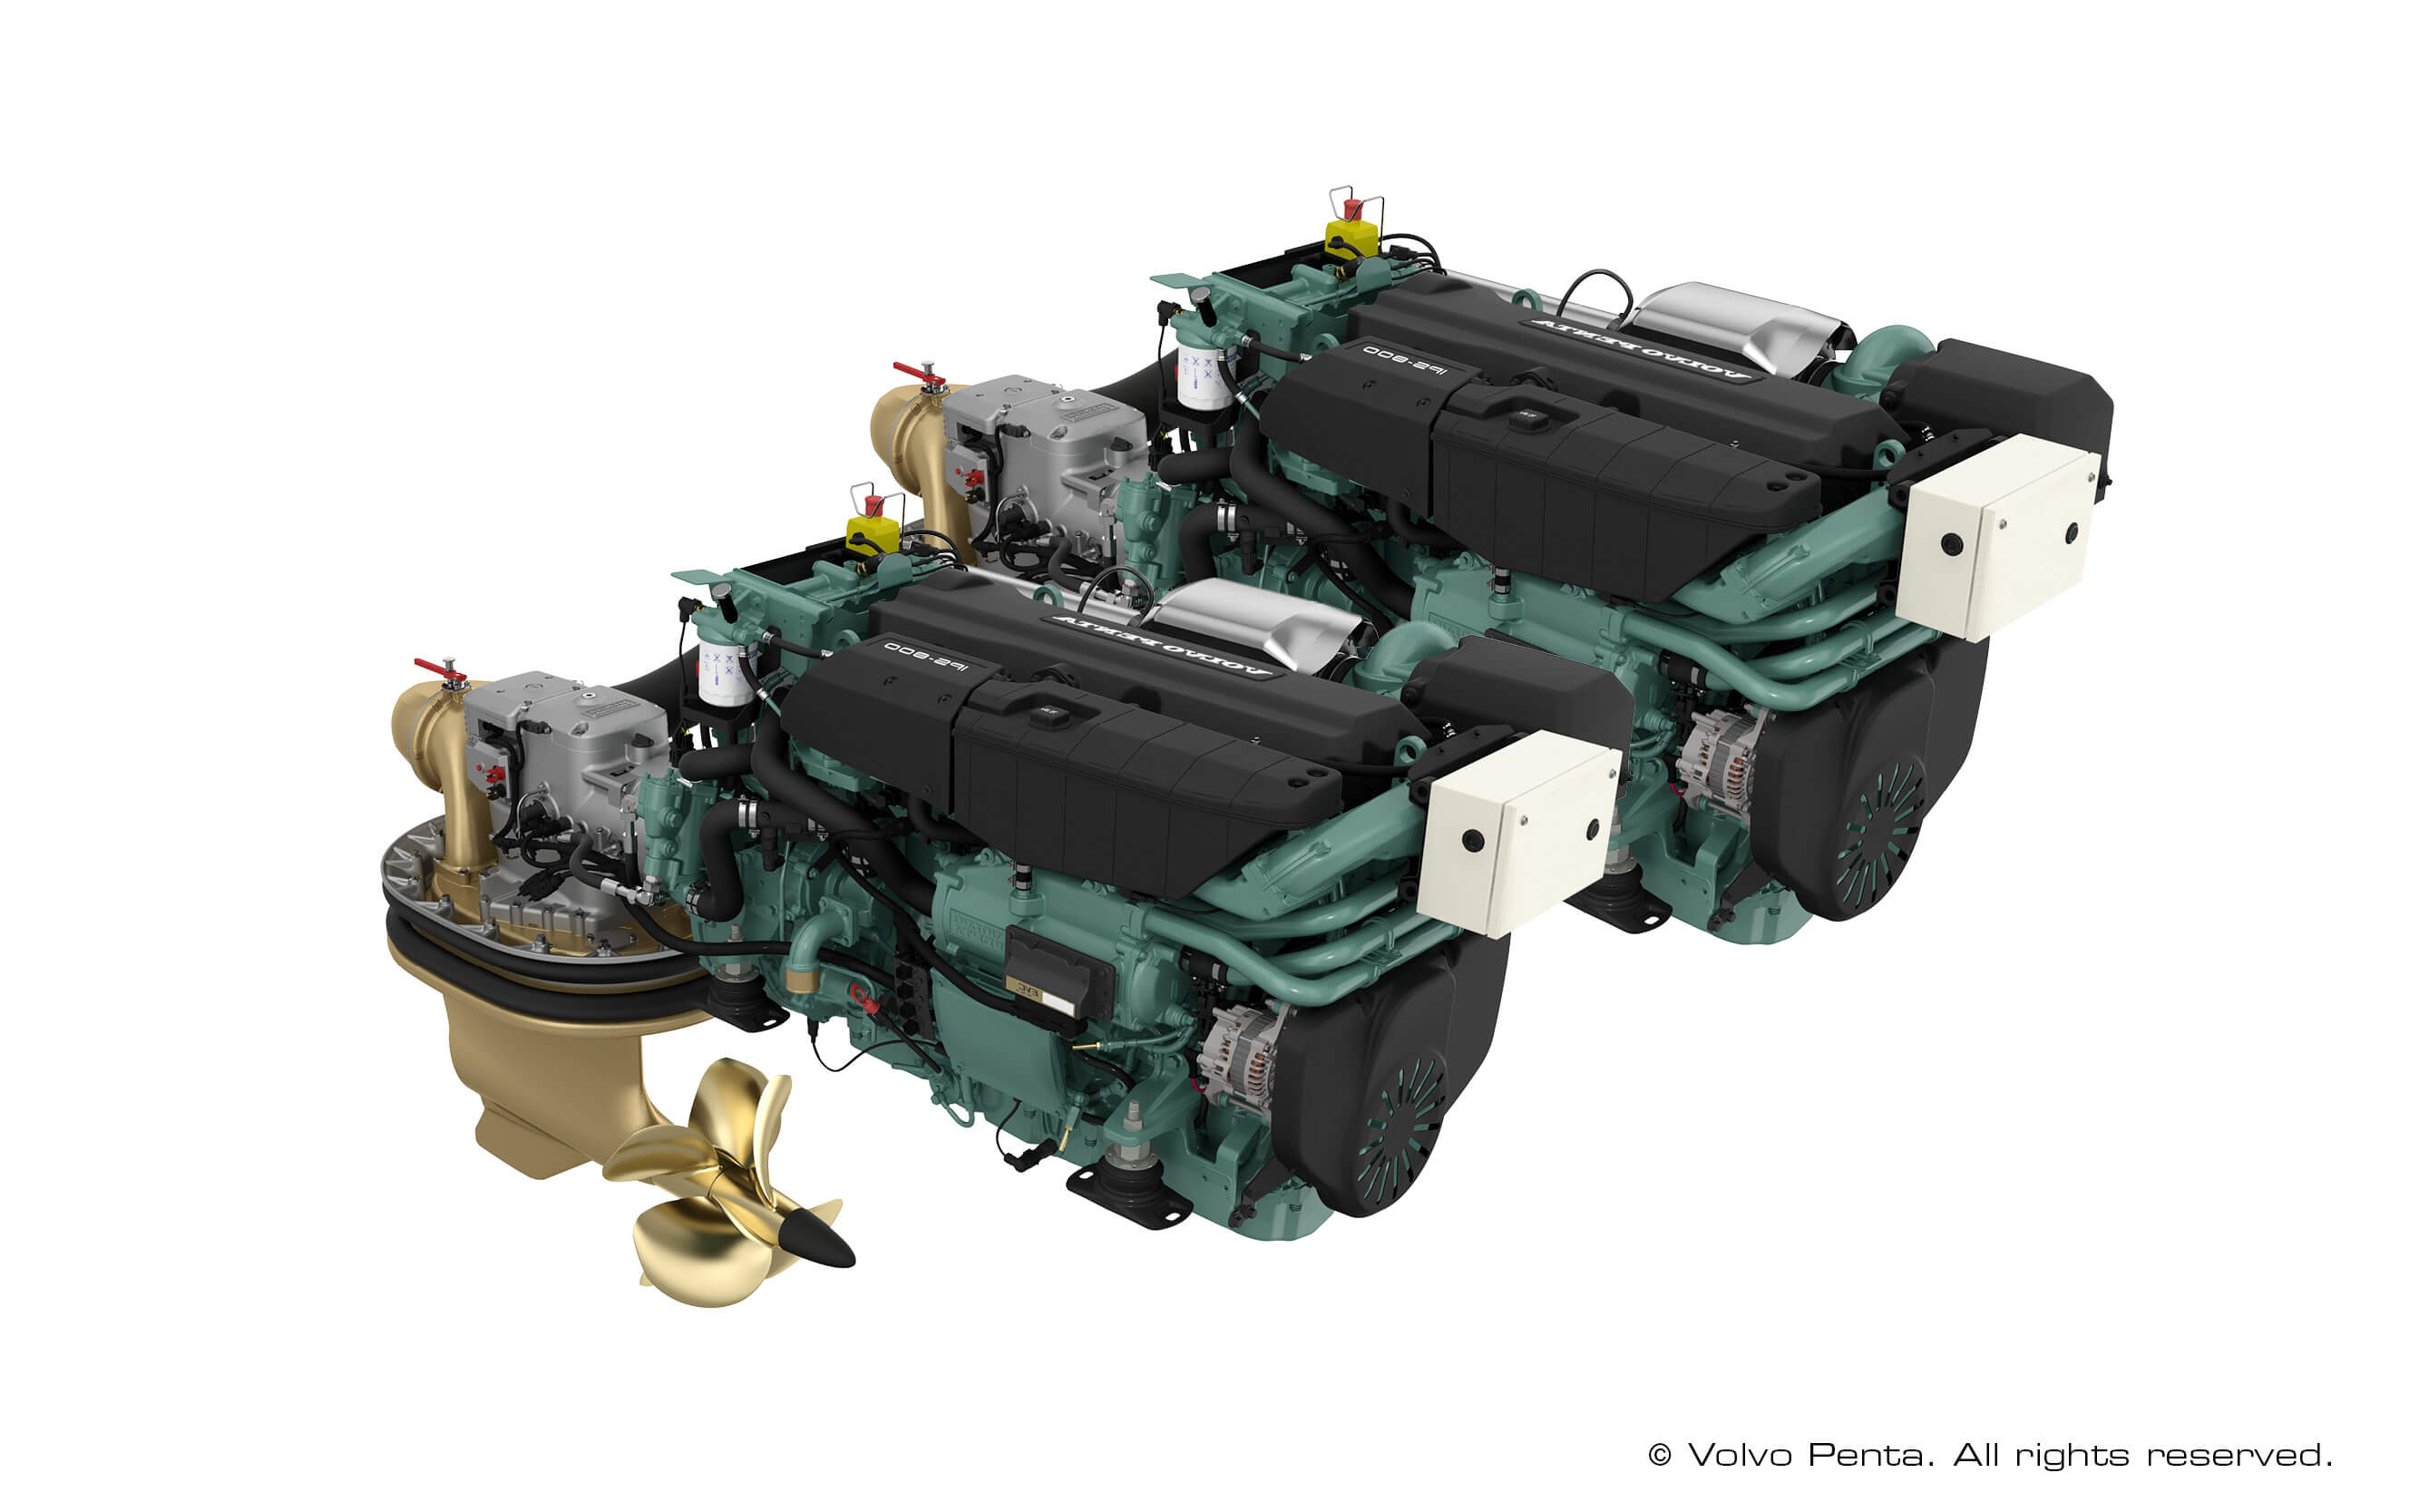 2 Volvo Penta IPS800 (600 hp) with propeller N3